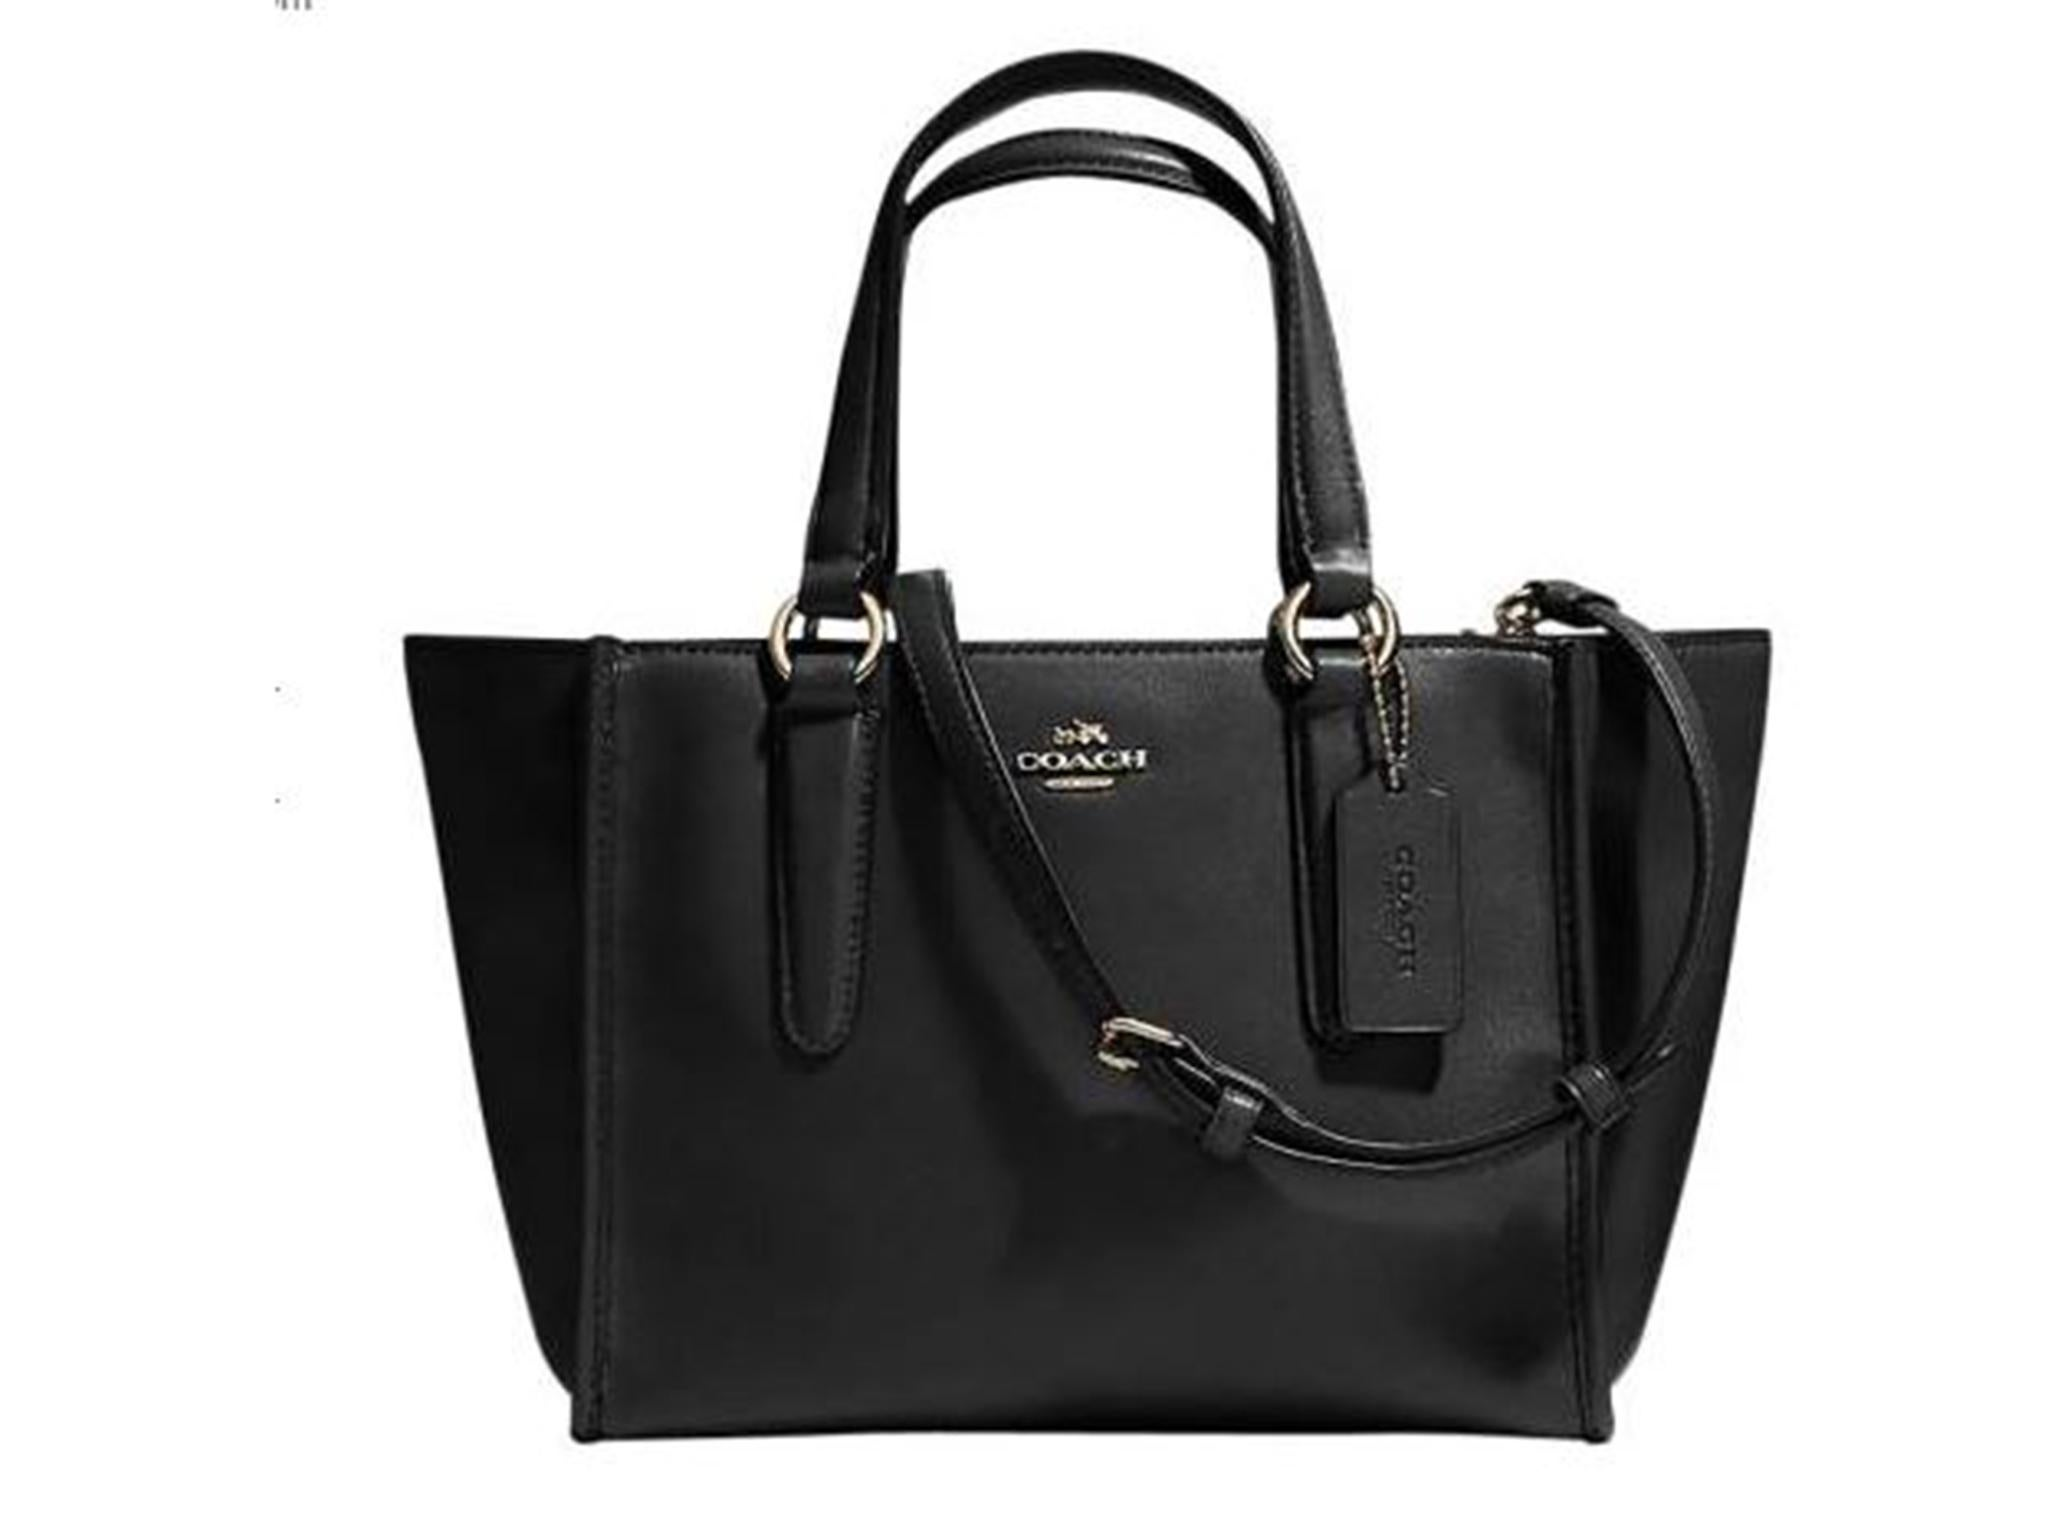 7d6e488bb0bc We love discount designer website BrandAlley for nabbing expensive bags for  wallet-friendly prices